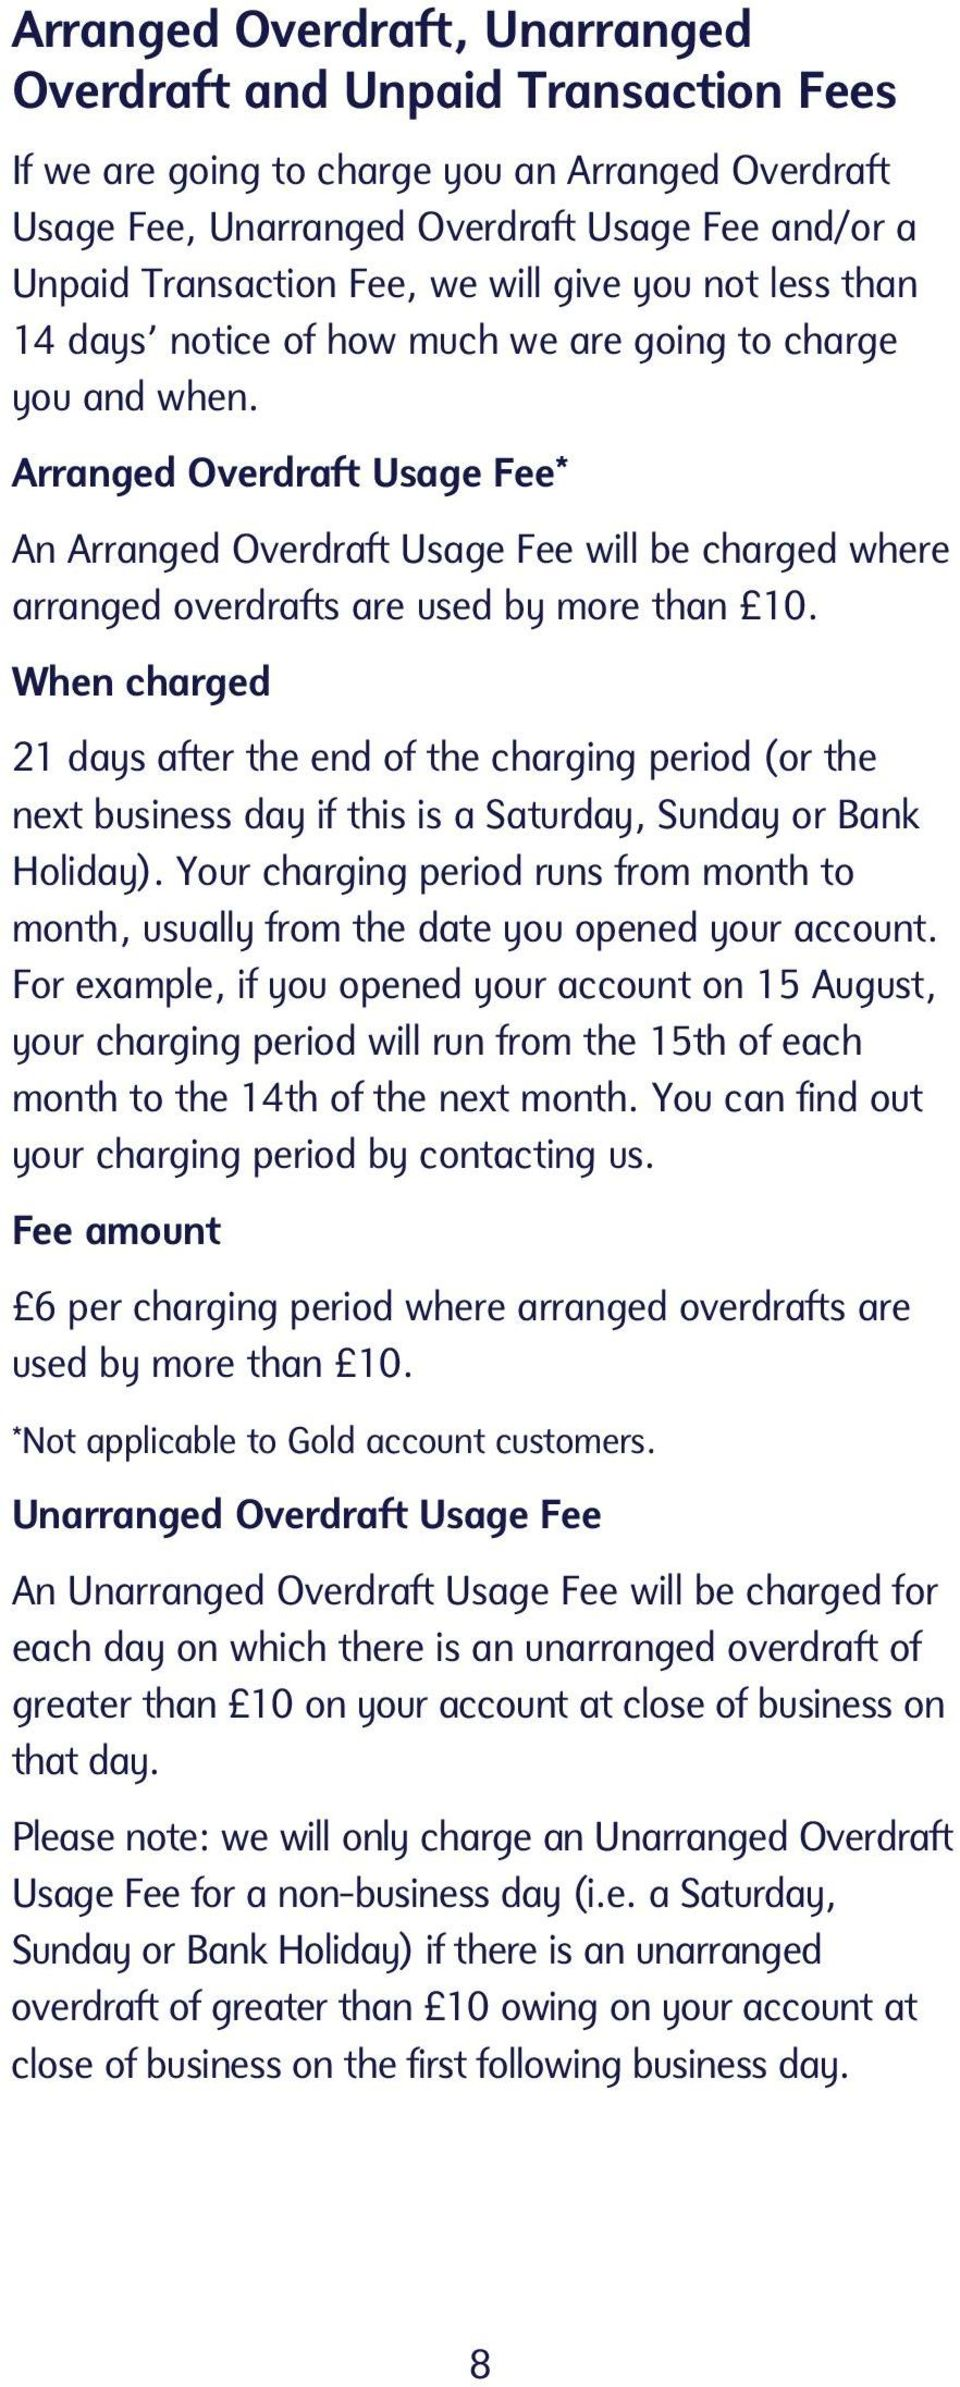 Arranged Overdraft Usage Fee* An Arranged Overdraft Usage Fee will be charged where arranged overdrafts are used by more than 10.